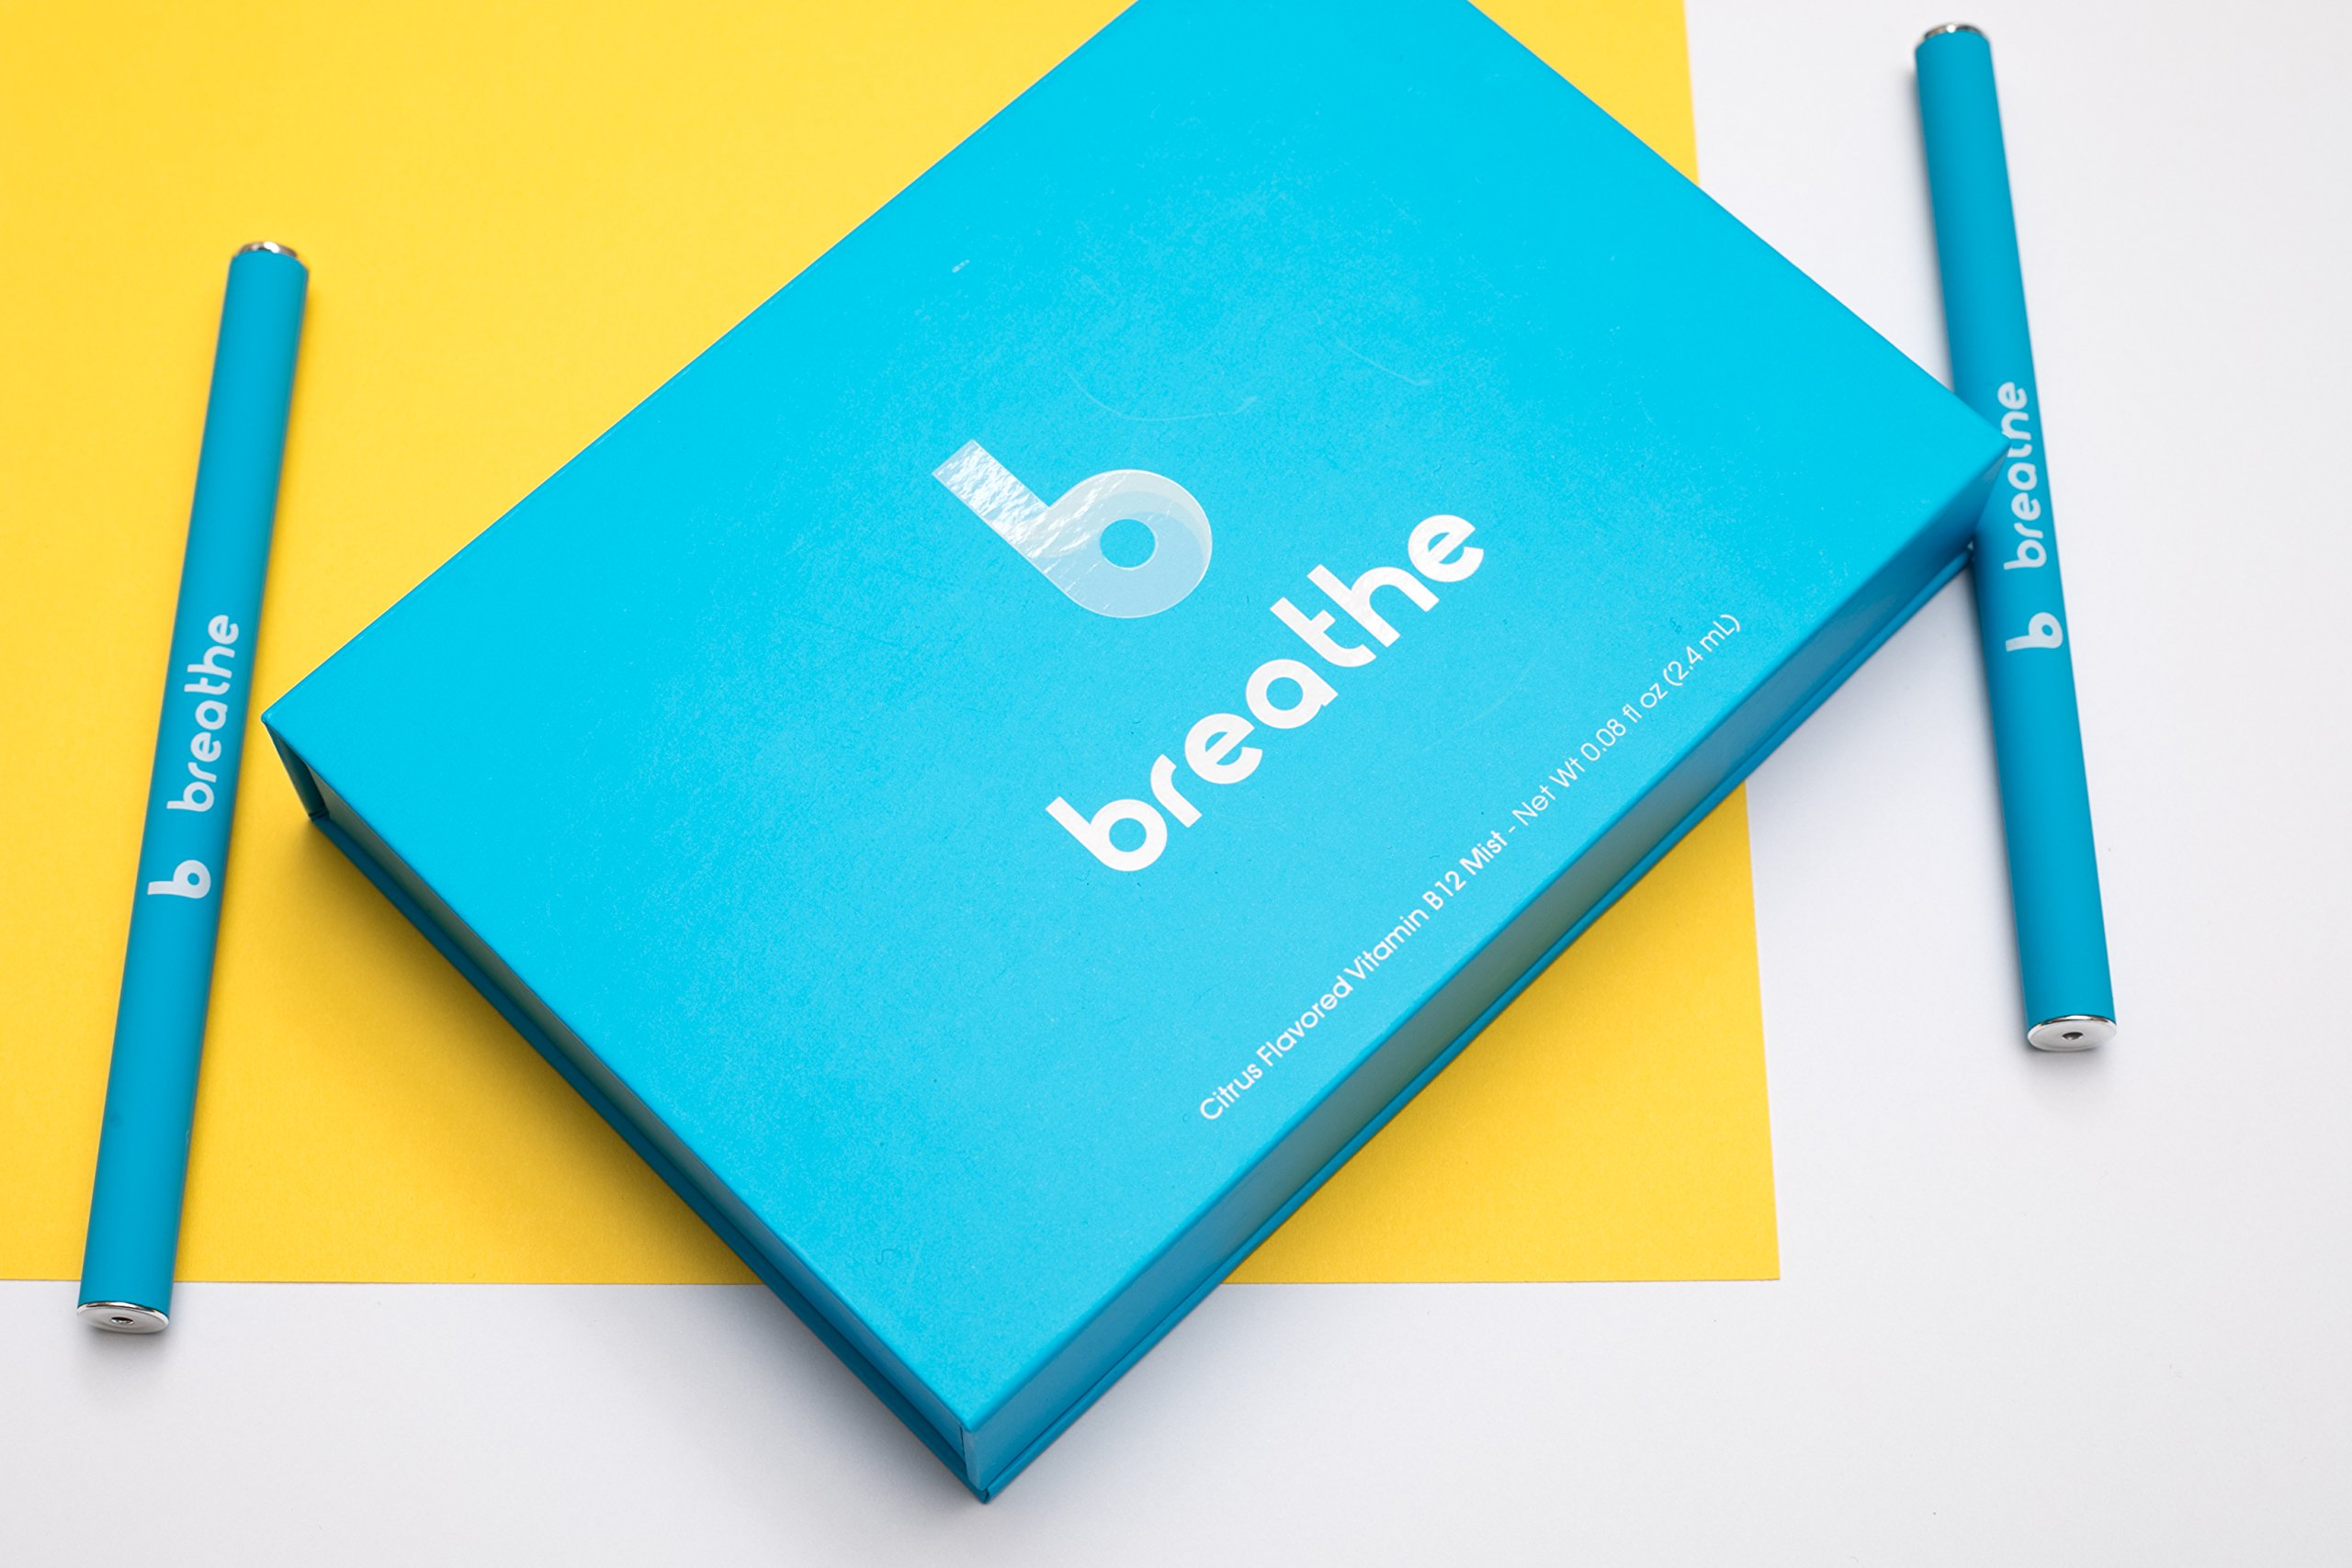 Breathe B12 Methylated Vitamin B12 Diffuser - Maximize Absorption with Nutritional Aromatherapy Inhaler (3-Month Supply) by Breathe B12